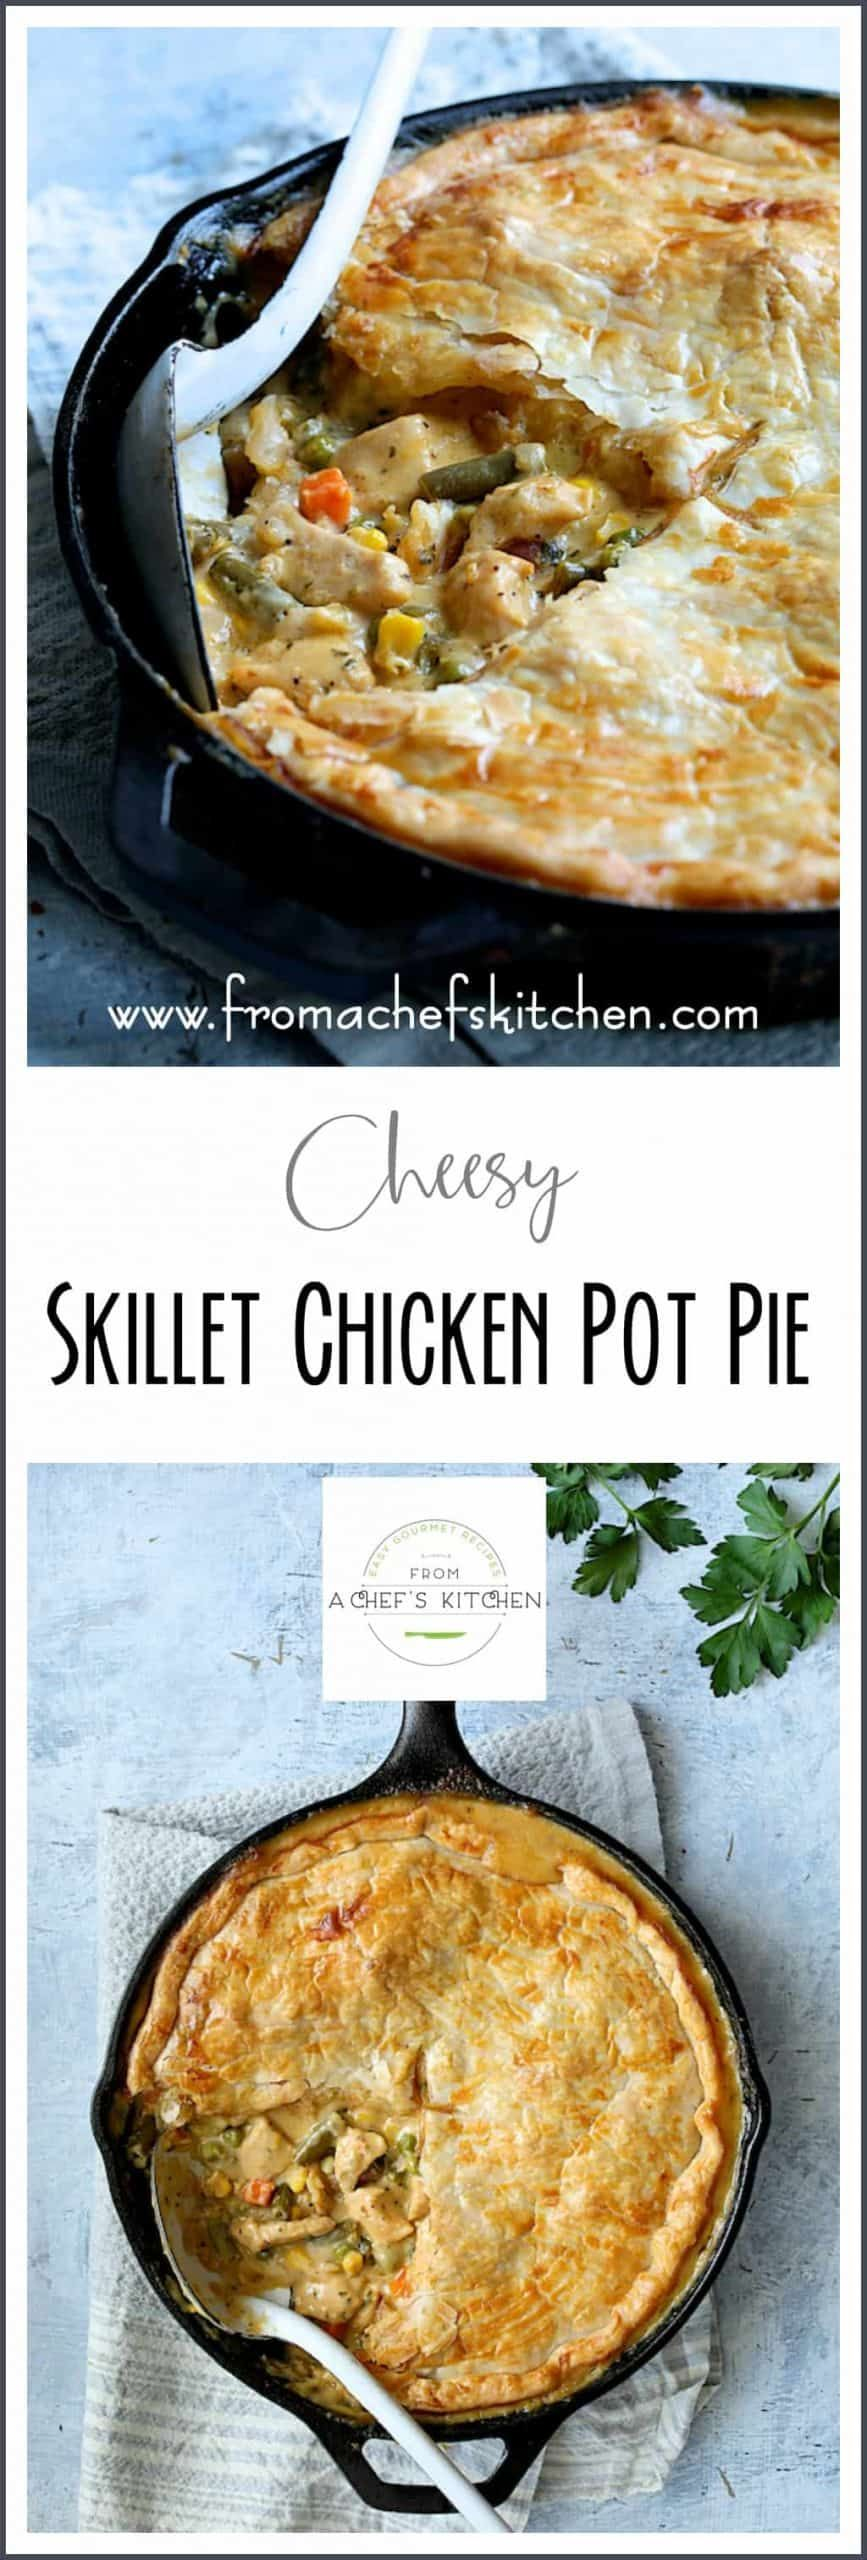 Cheesy Skillet Chicken Pot Pie is pure classic comfort food made in one pan for an easy dinner that's sure to become a family favorite! #AD #sponsored #PerdueFarmsFarmtoHome #PerdueFarms_Partner AD #FamilyFarming #ThankAFarmer #FamilyFarmers #RaisedWithCare @PerdueFarms